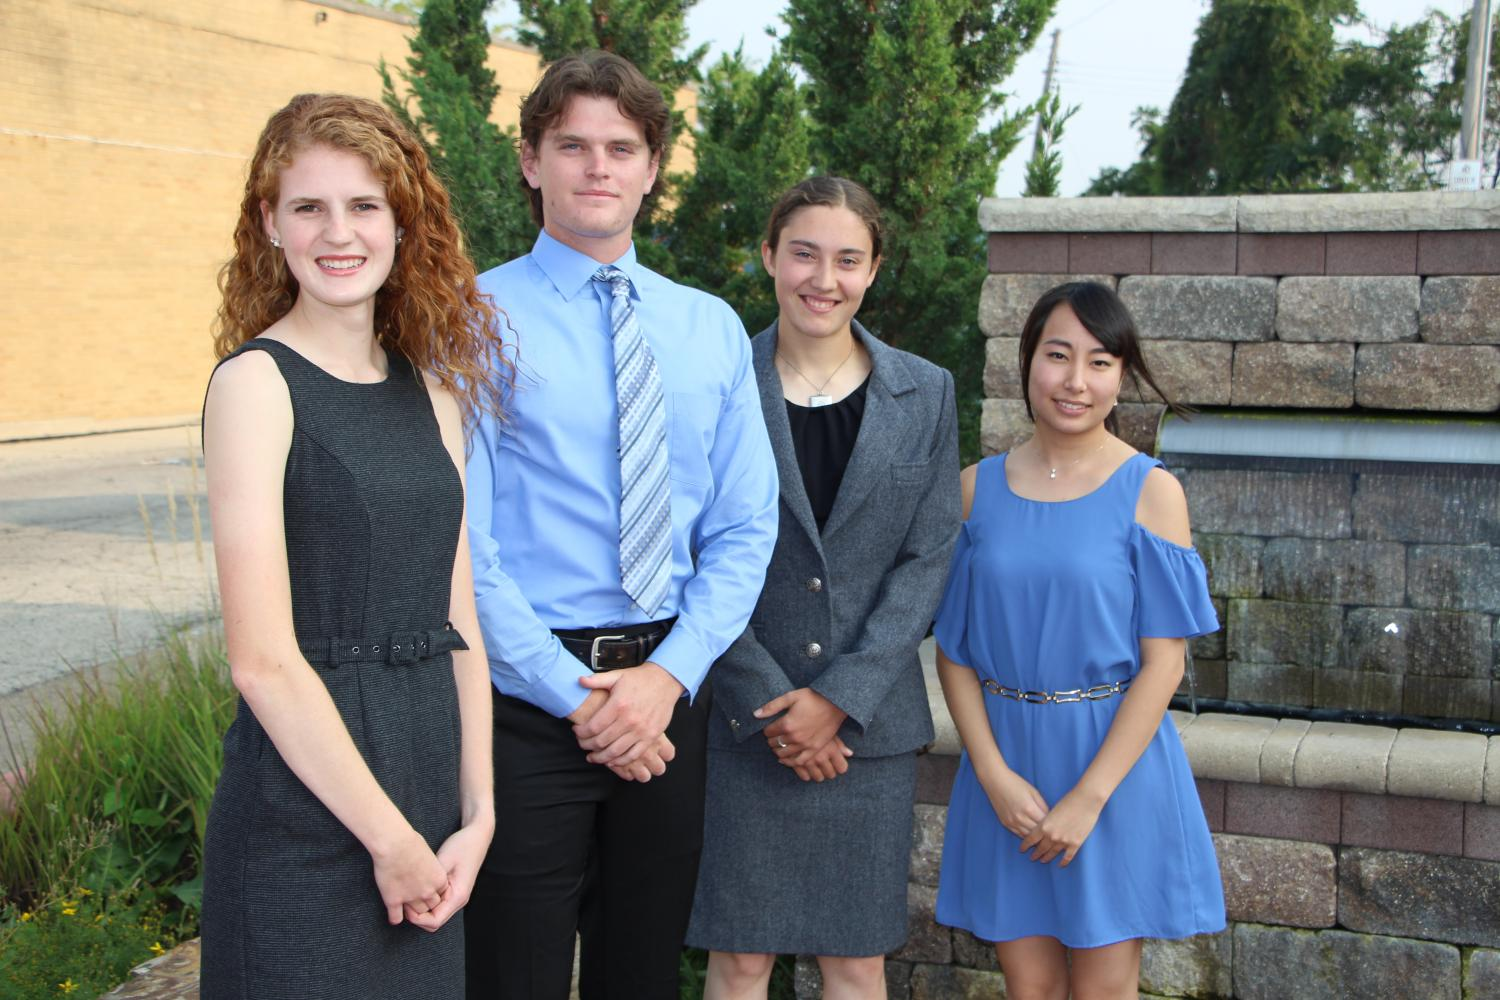 21st Century Scholars Society finalists include Brianna Legner, left, Nick Needs, Martha Hoffman and 21st Century Scholar Akari Oya. Legner, Needs and Hoffman received $1,500 each and Oya received $3,000. Ten other students were chosen to receive $6,750 from the Society.